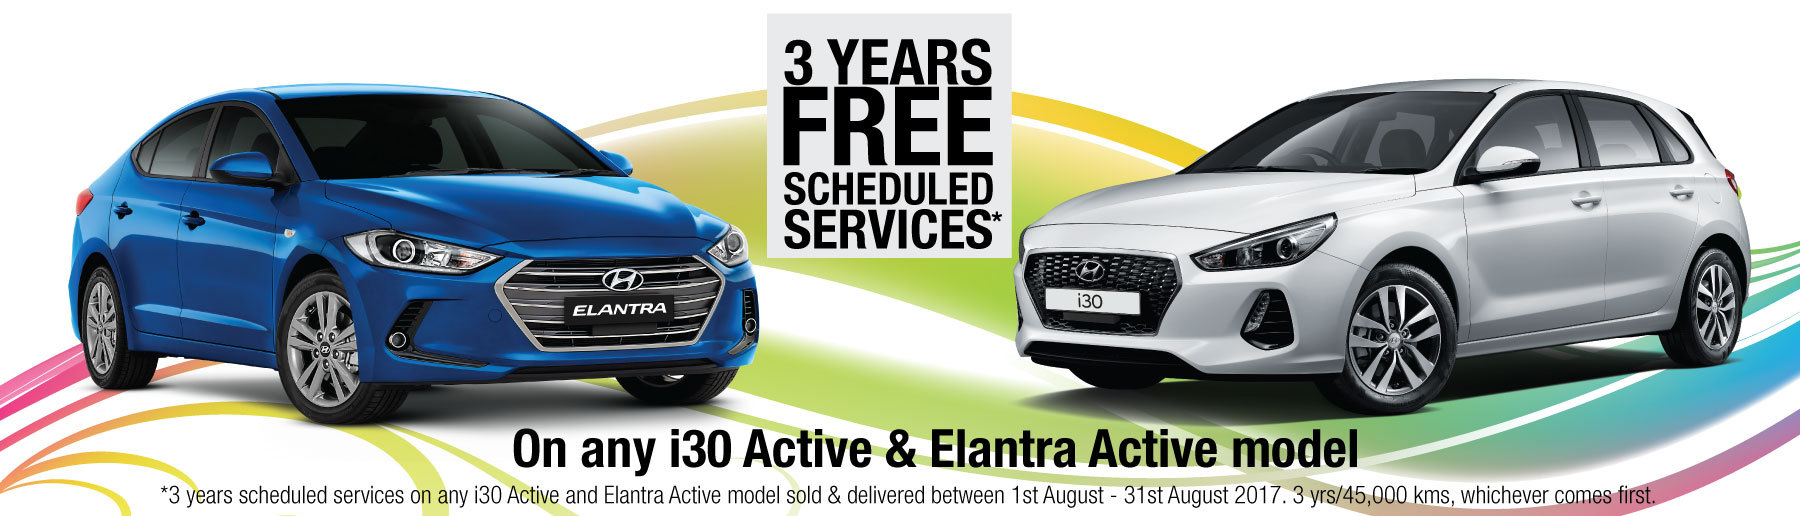 3 Years Free Scheduled Services on Hyundai i30 Active & Elantra Active